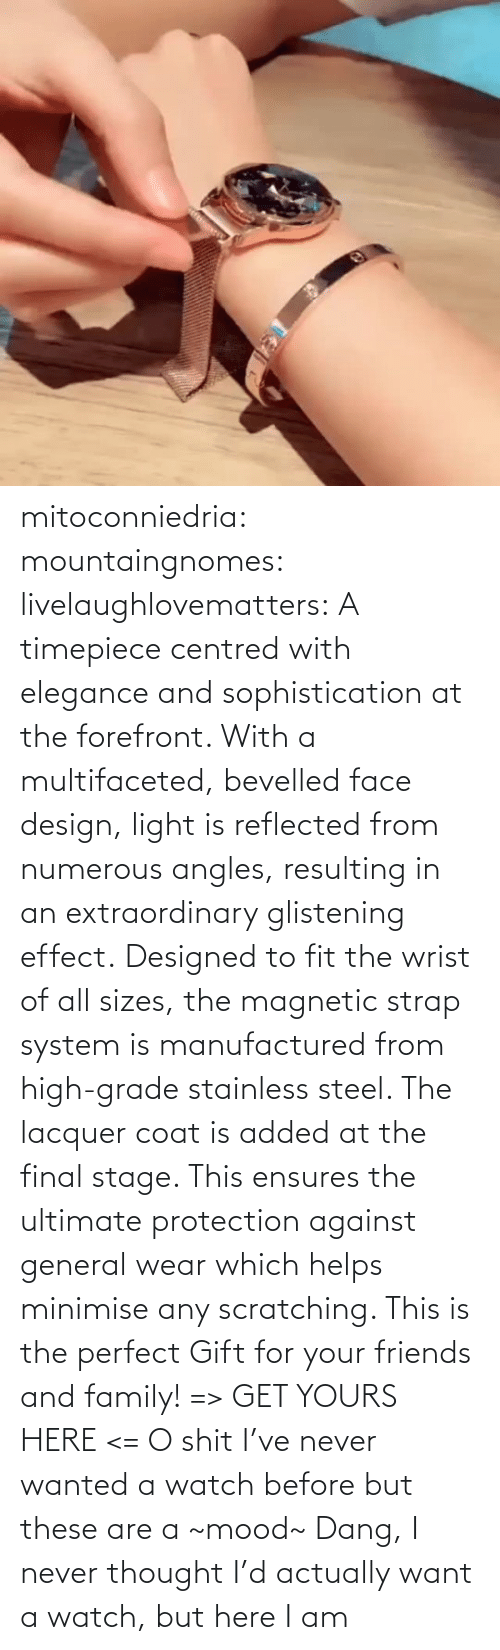 From: mitoconniedria: mountaingnomes:   livelaughlovematters:  A timepiece centred with elegance and sophistication at the forefront. With a multifaceted, bevelled face design, light is reflected from numerous angles, resulting in an extraordinary glistening effect. Designed to fit the wrist of all sizes, the magnetic strap system is manufactured from high-grade stainless steel. The lacquer coat is added at the final stage. This ensures the ultimate protection against general wear which helps minimise any scratching. This is the perfect Gift for your friends and family! => GET YOURS HERE <=  O shit I've never wanted a watch before but these are a ~mood~    Dang, I never thought I'd actually want a watch, but here I am